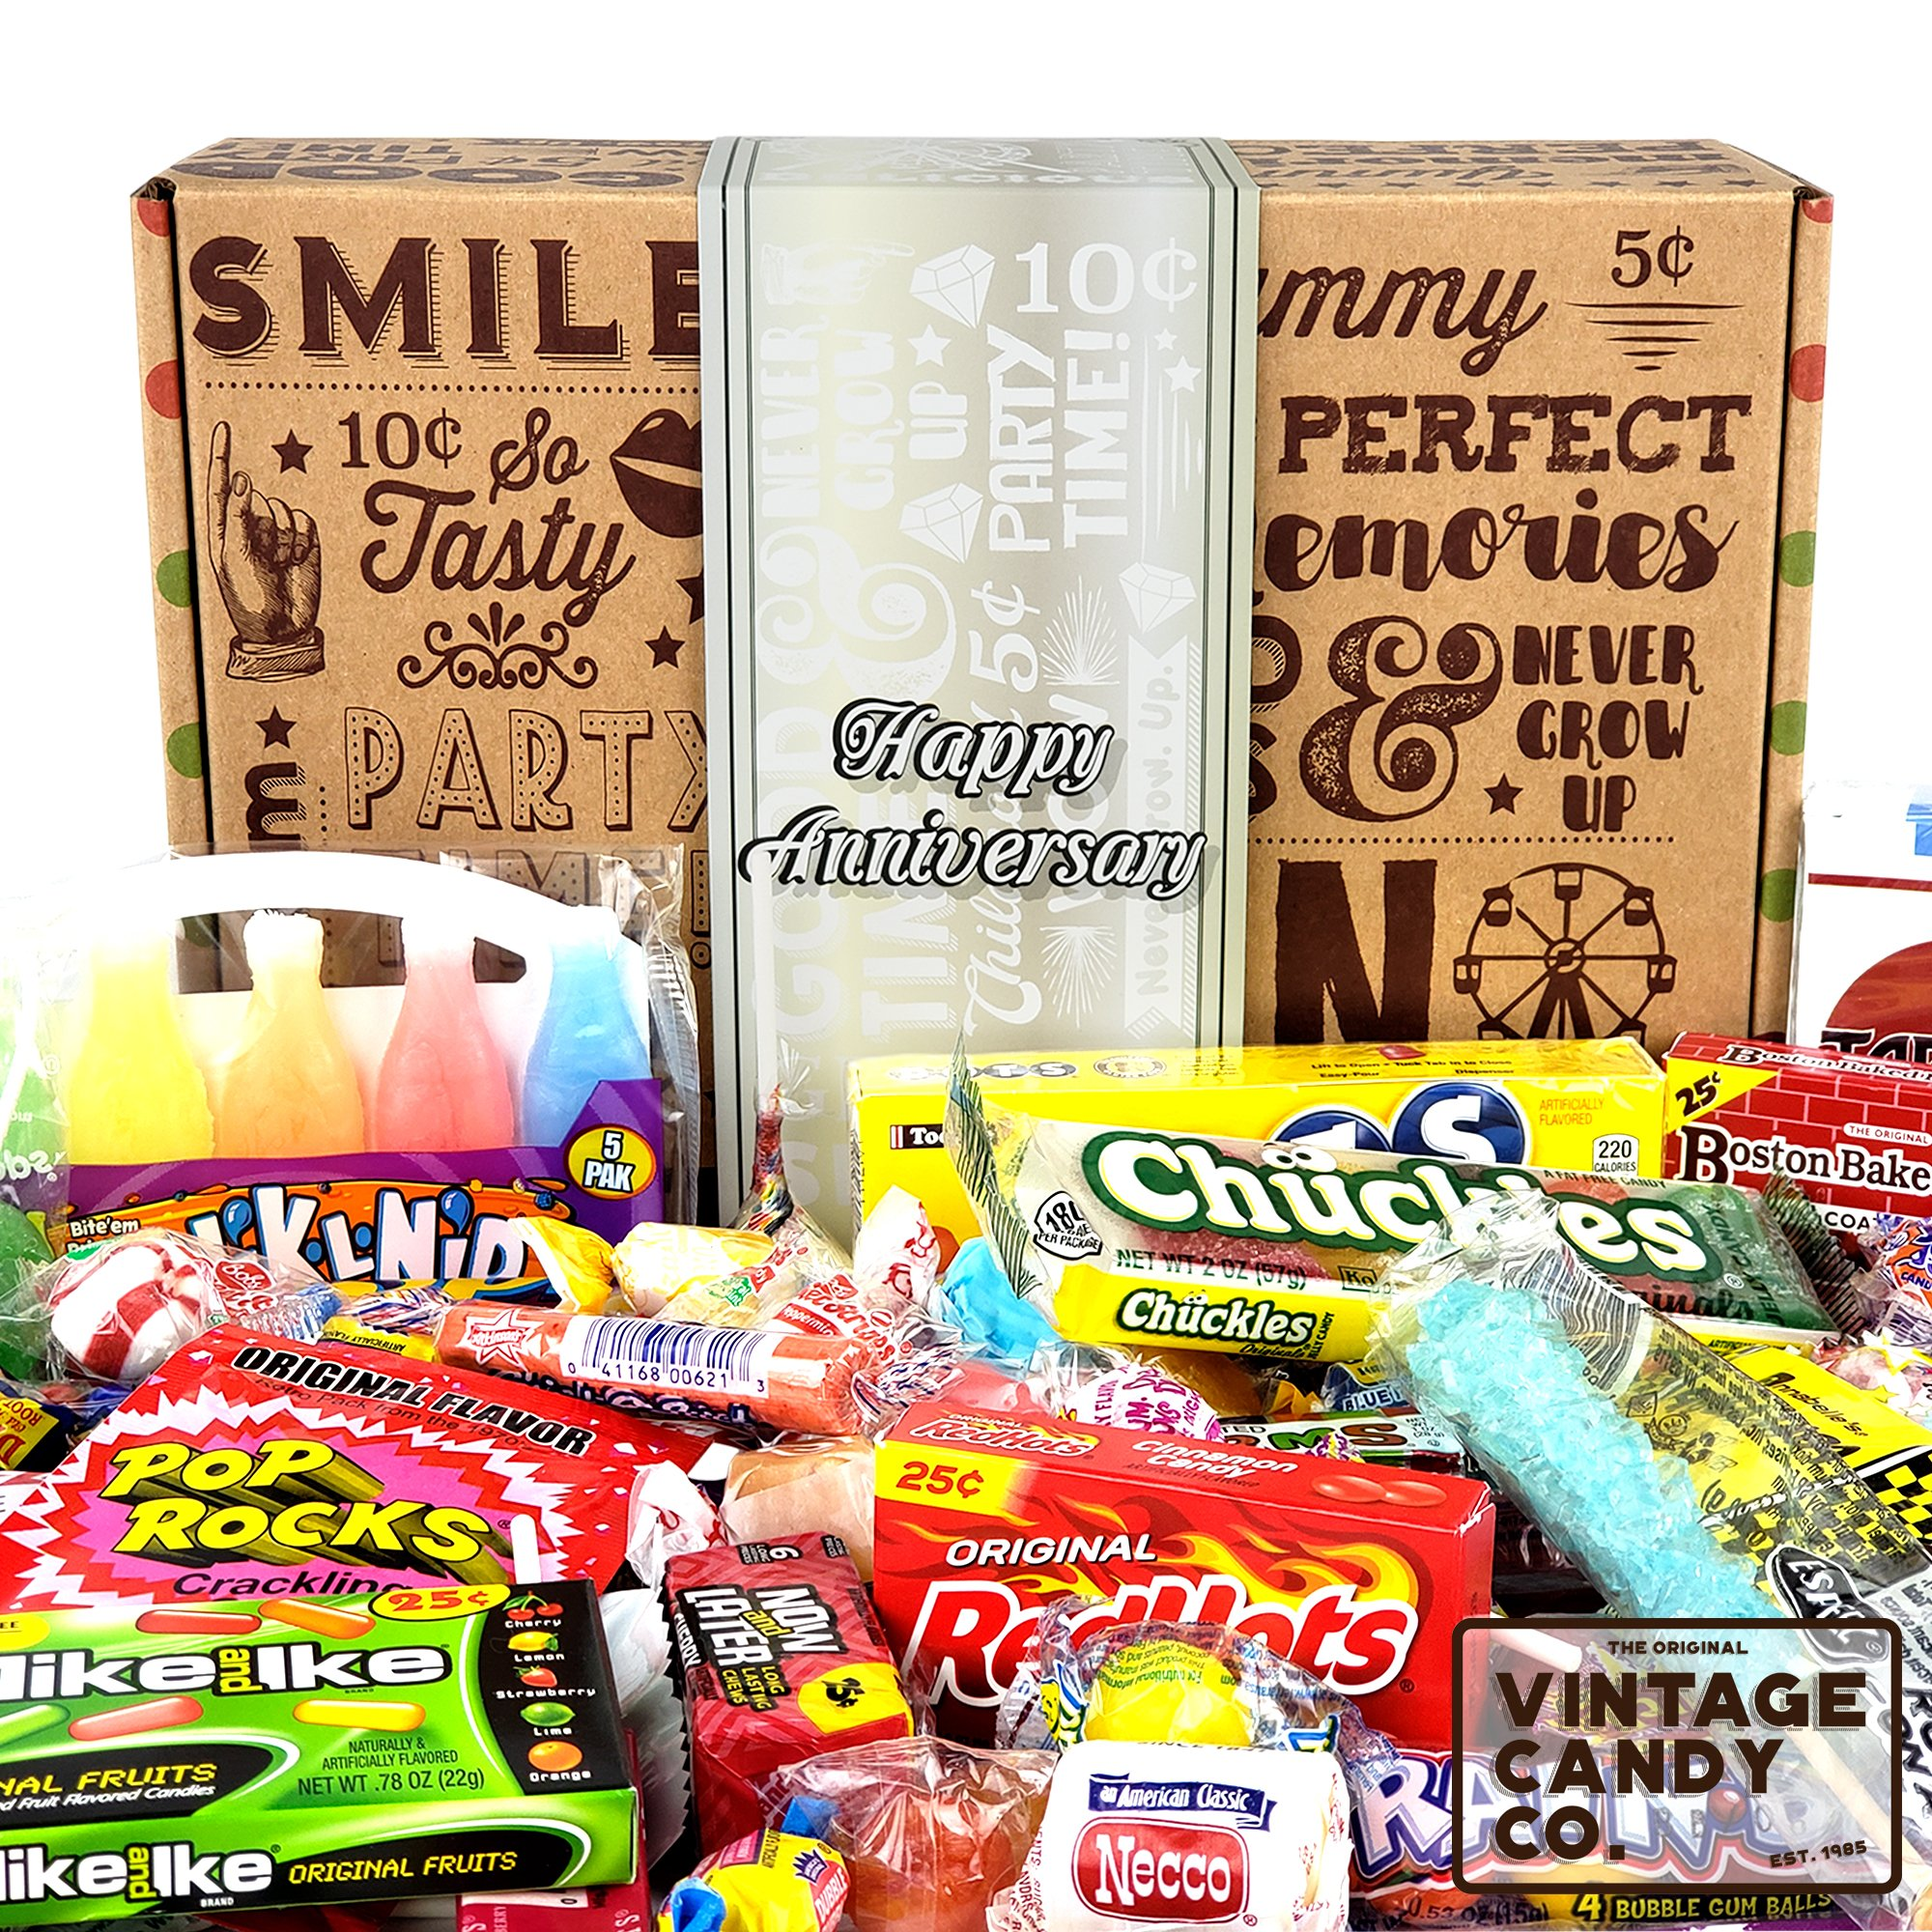 HAPPY ANNIVERSARY GIFT FOR MEN OR WOMEN - Fun, Unique & Tasty Candy Gift For Anniversary Celebration Year - PERFECT for Family, Friend, Couple, Associate, Co-Worker - Him or Her (65 Pieces)